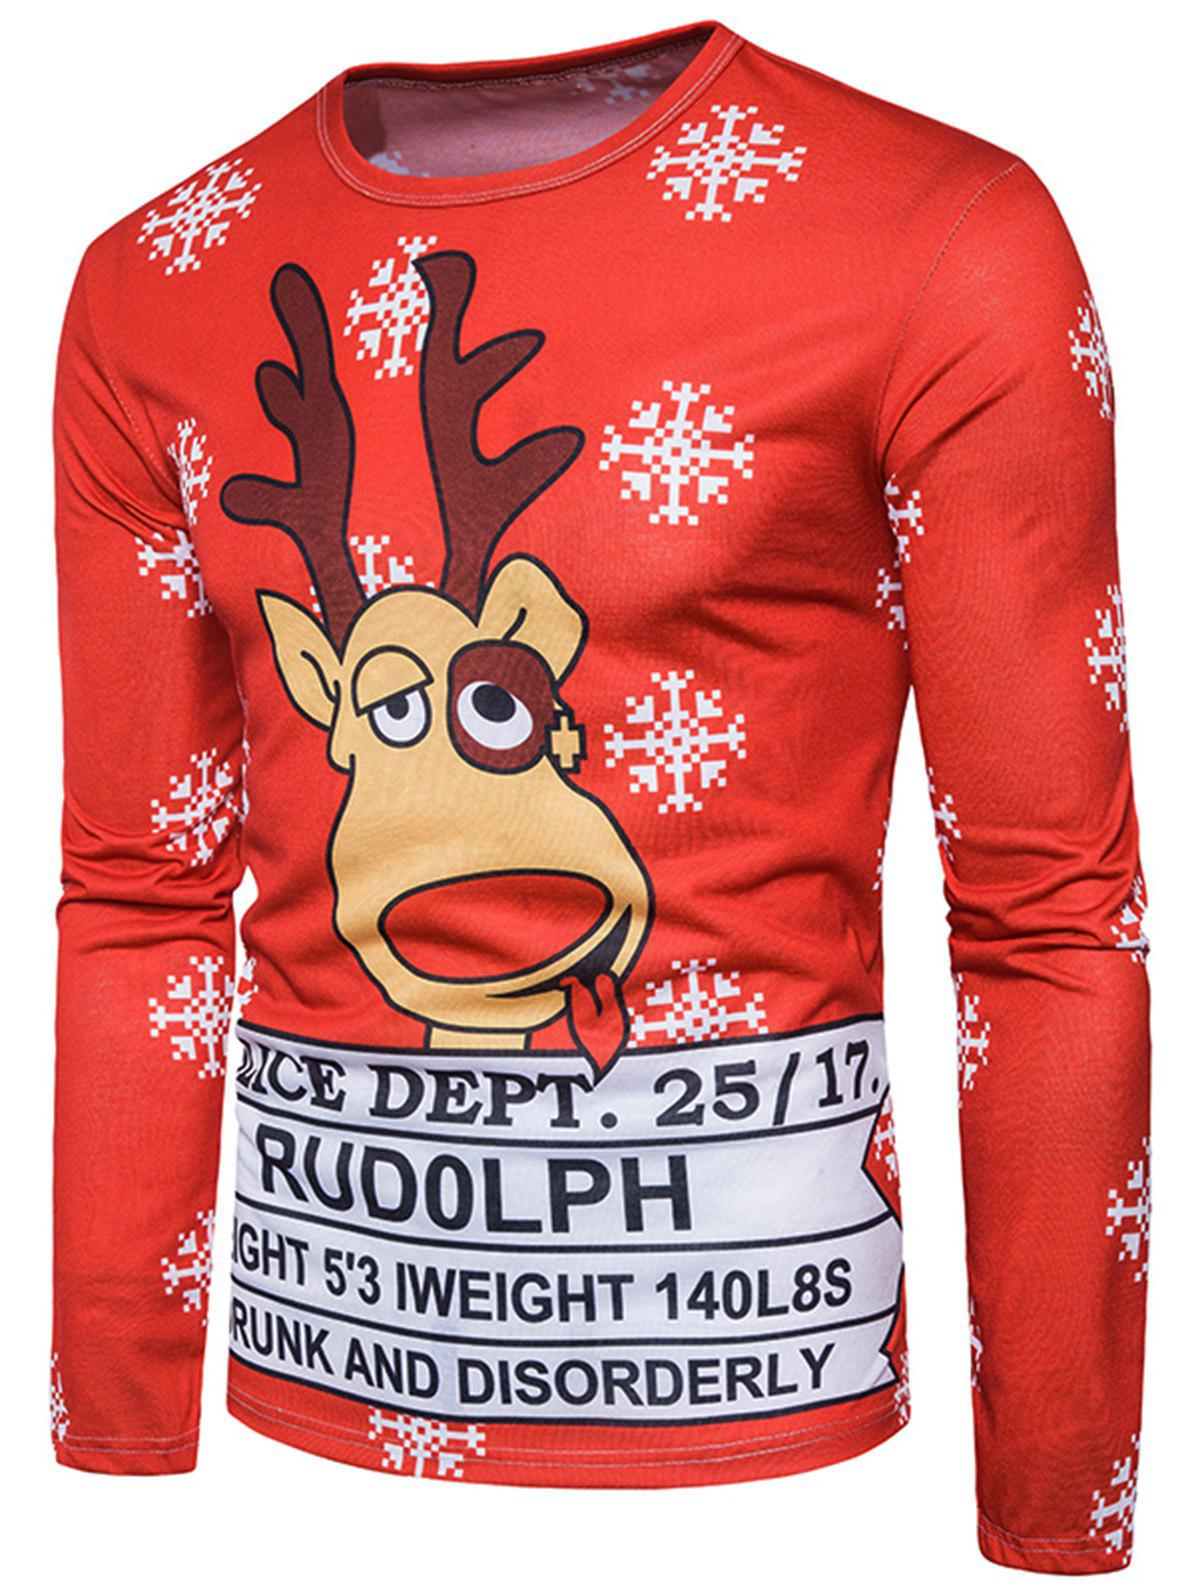 3D Reindeer Graphic Print Christmas T-shirtMEN<br><br>Size: 2XL; Color: COLORMIX; Material: Cotton,Polyester; Sleeve Length: Full; Collar: Crew Neck; Style: Casual,Fashion,Streetwear; Pattern Type: 3D,Character,Letter; Season: Fall; Weight: 0.3000kg; Package Contents: 1 x T-shirt;